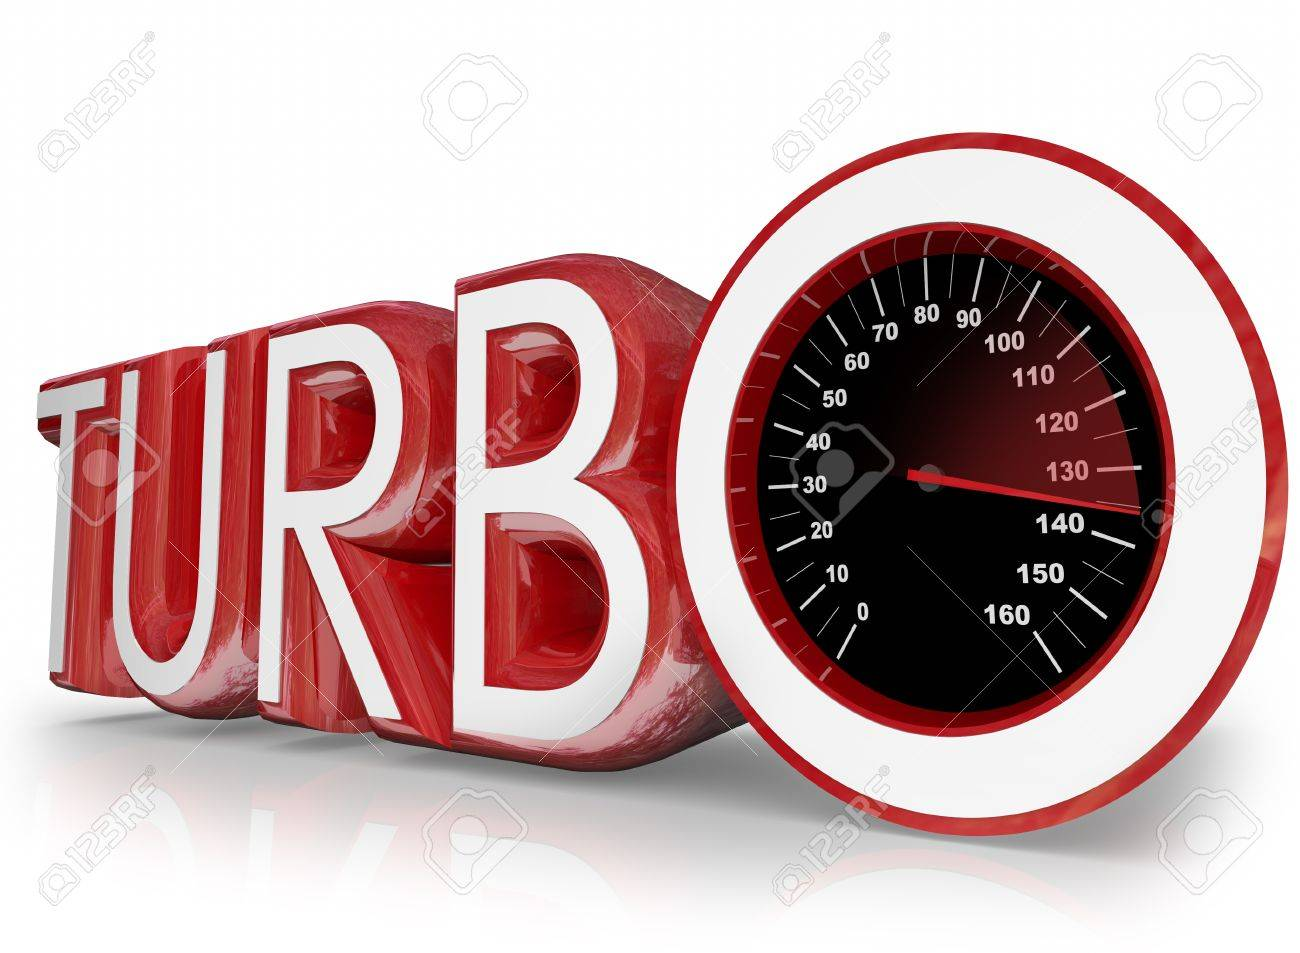 Turbo Word In Red 3d Letters And A Speedometer With Needle Racing ...